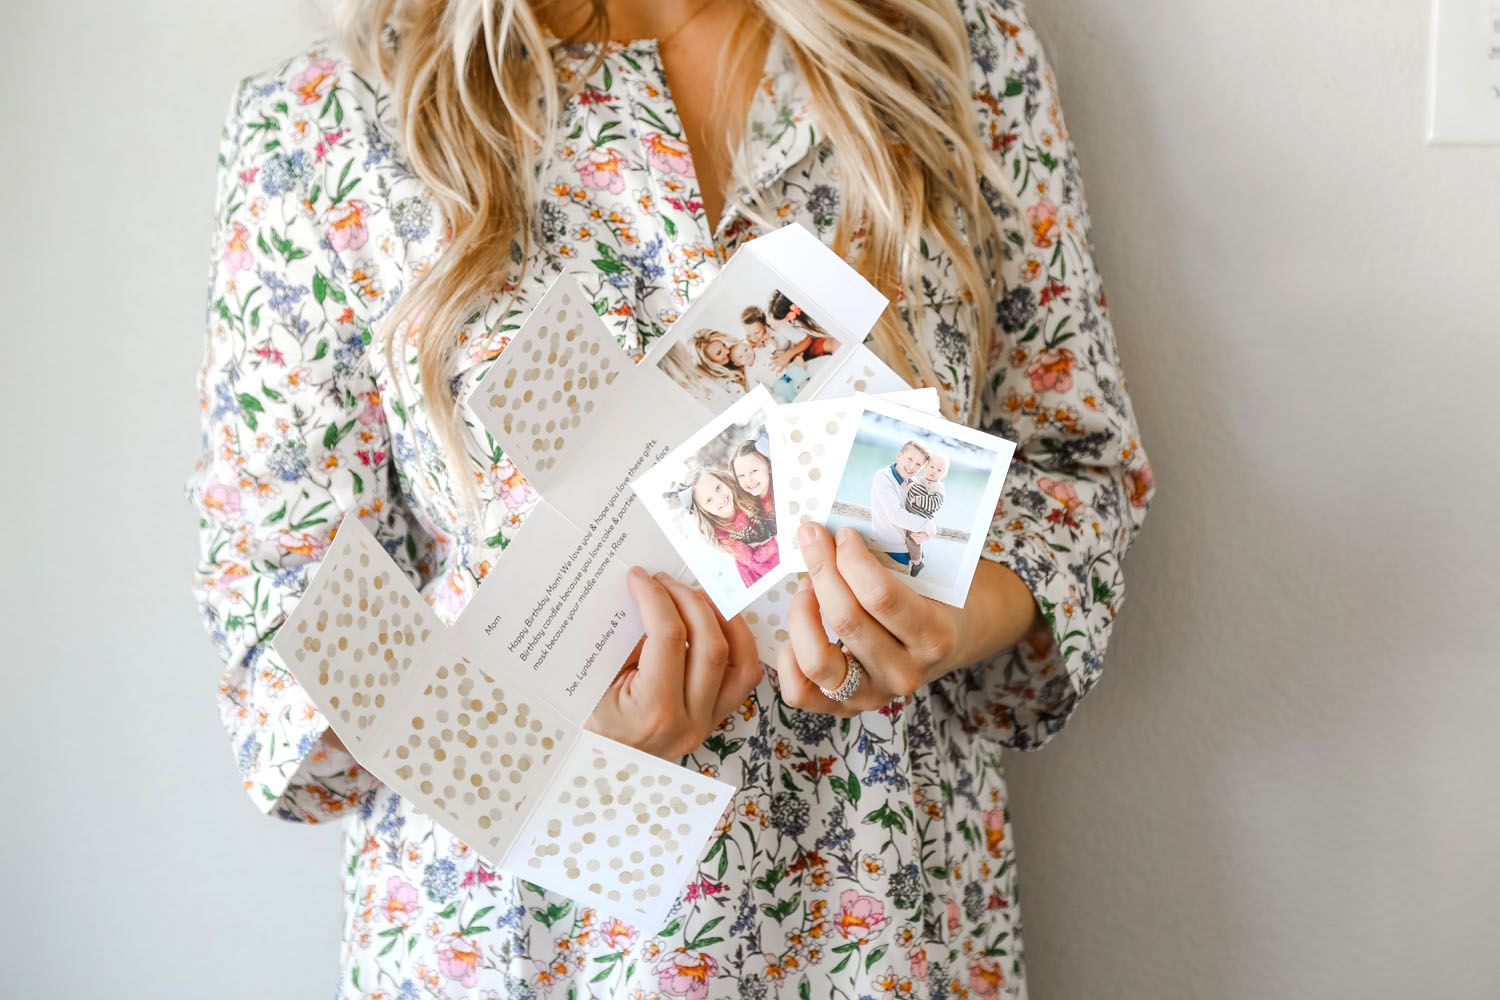 Greetabl Promo Code for birthday packages, featured by Utah lifestyle blogger, By Jen Rose